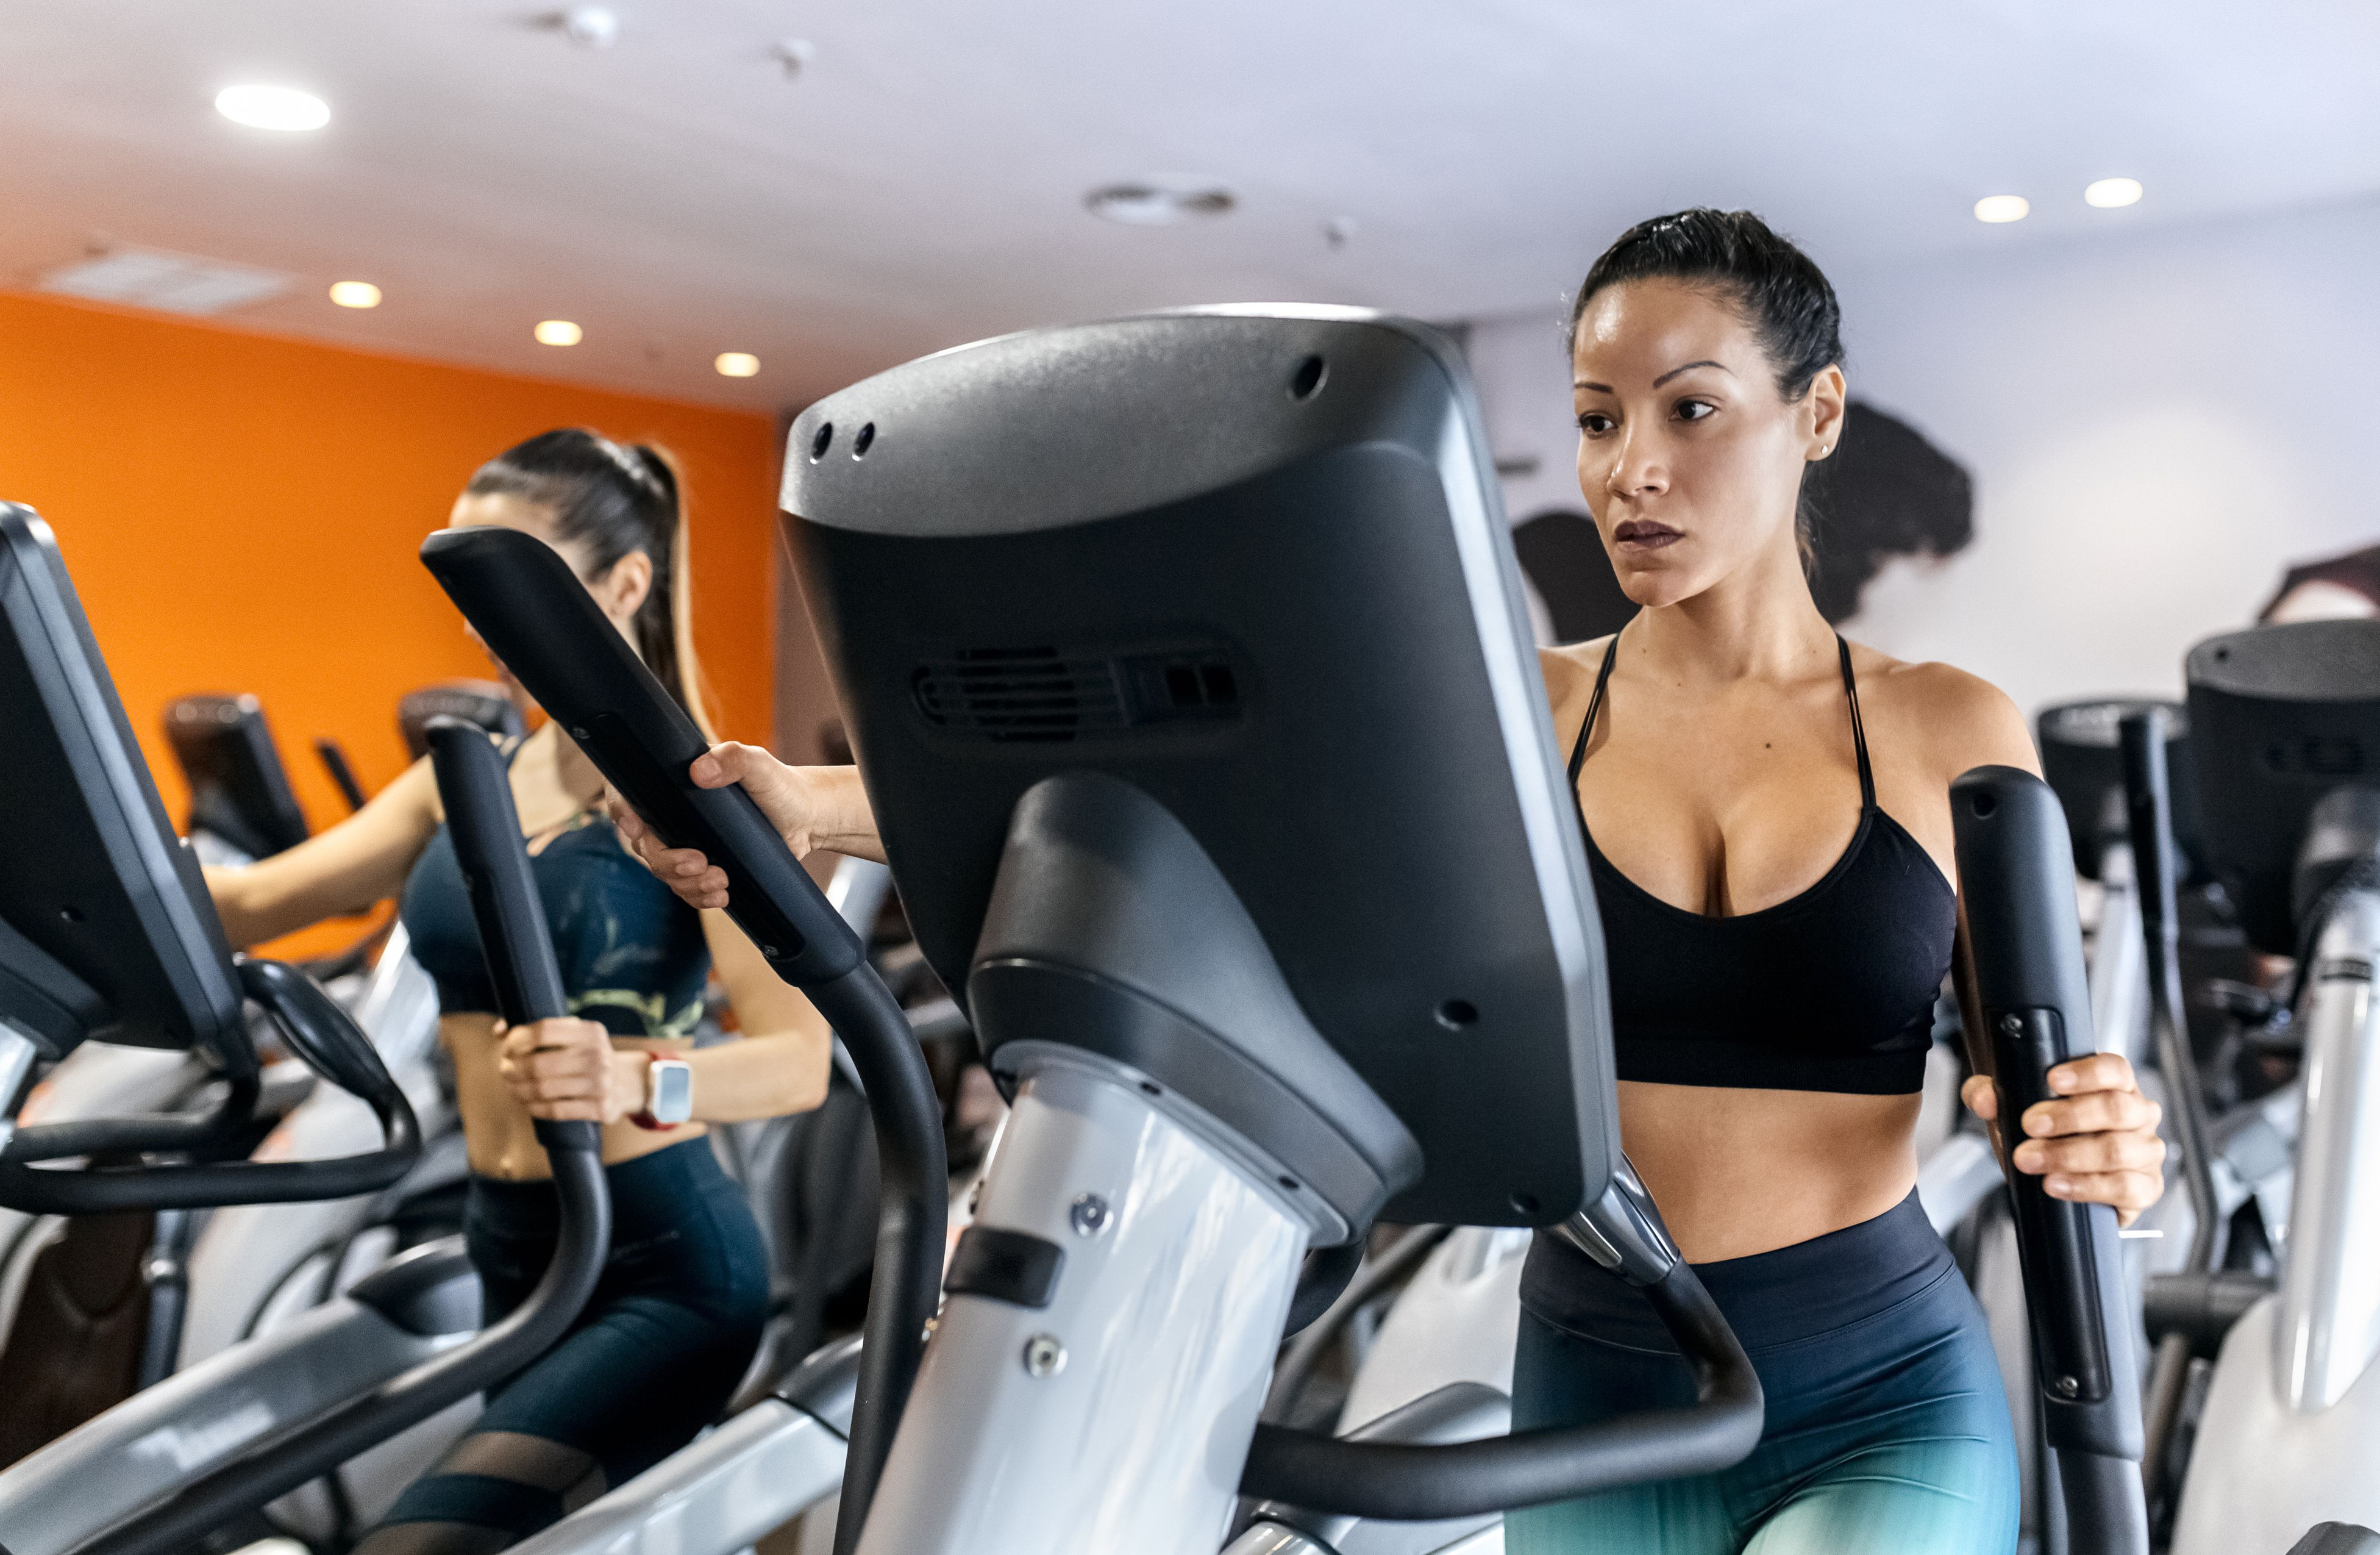 351c53e5098 Before You Buy an Elliptical Trainer